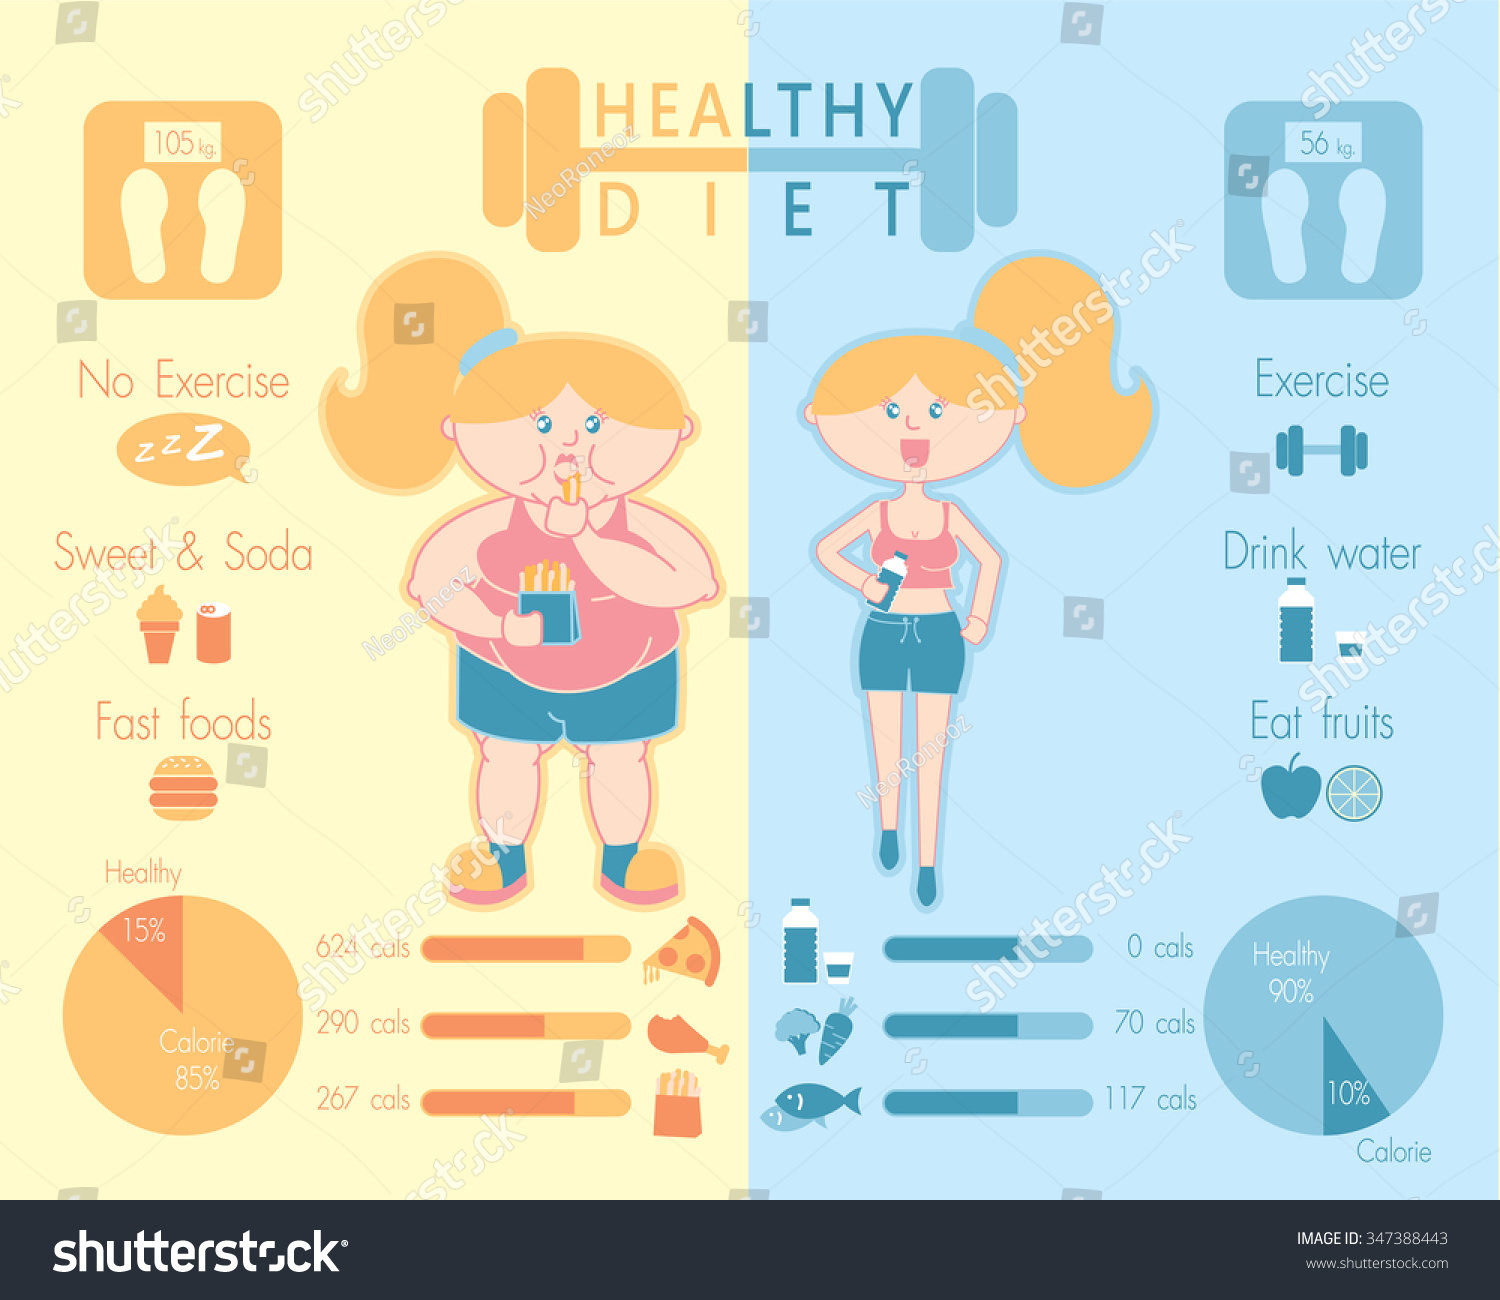 exercise health and lifestyle A healthy diet is a diet that helps to maintain or improve overall health a healthy  diet provides  a healthy lifestyle includes getting exercise every day along with  eating a healthy diet a healthy lifestyle may lower disease risks, such as obesity, .